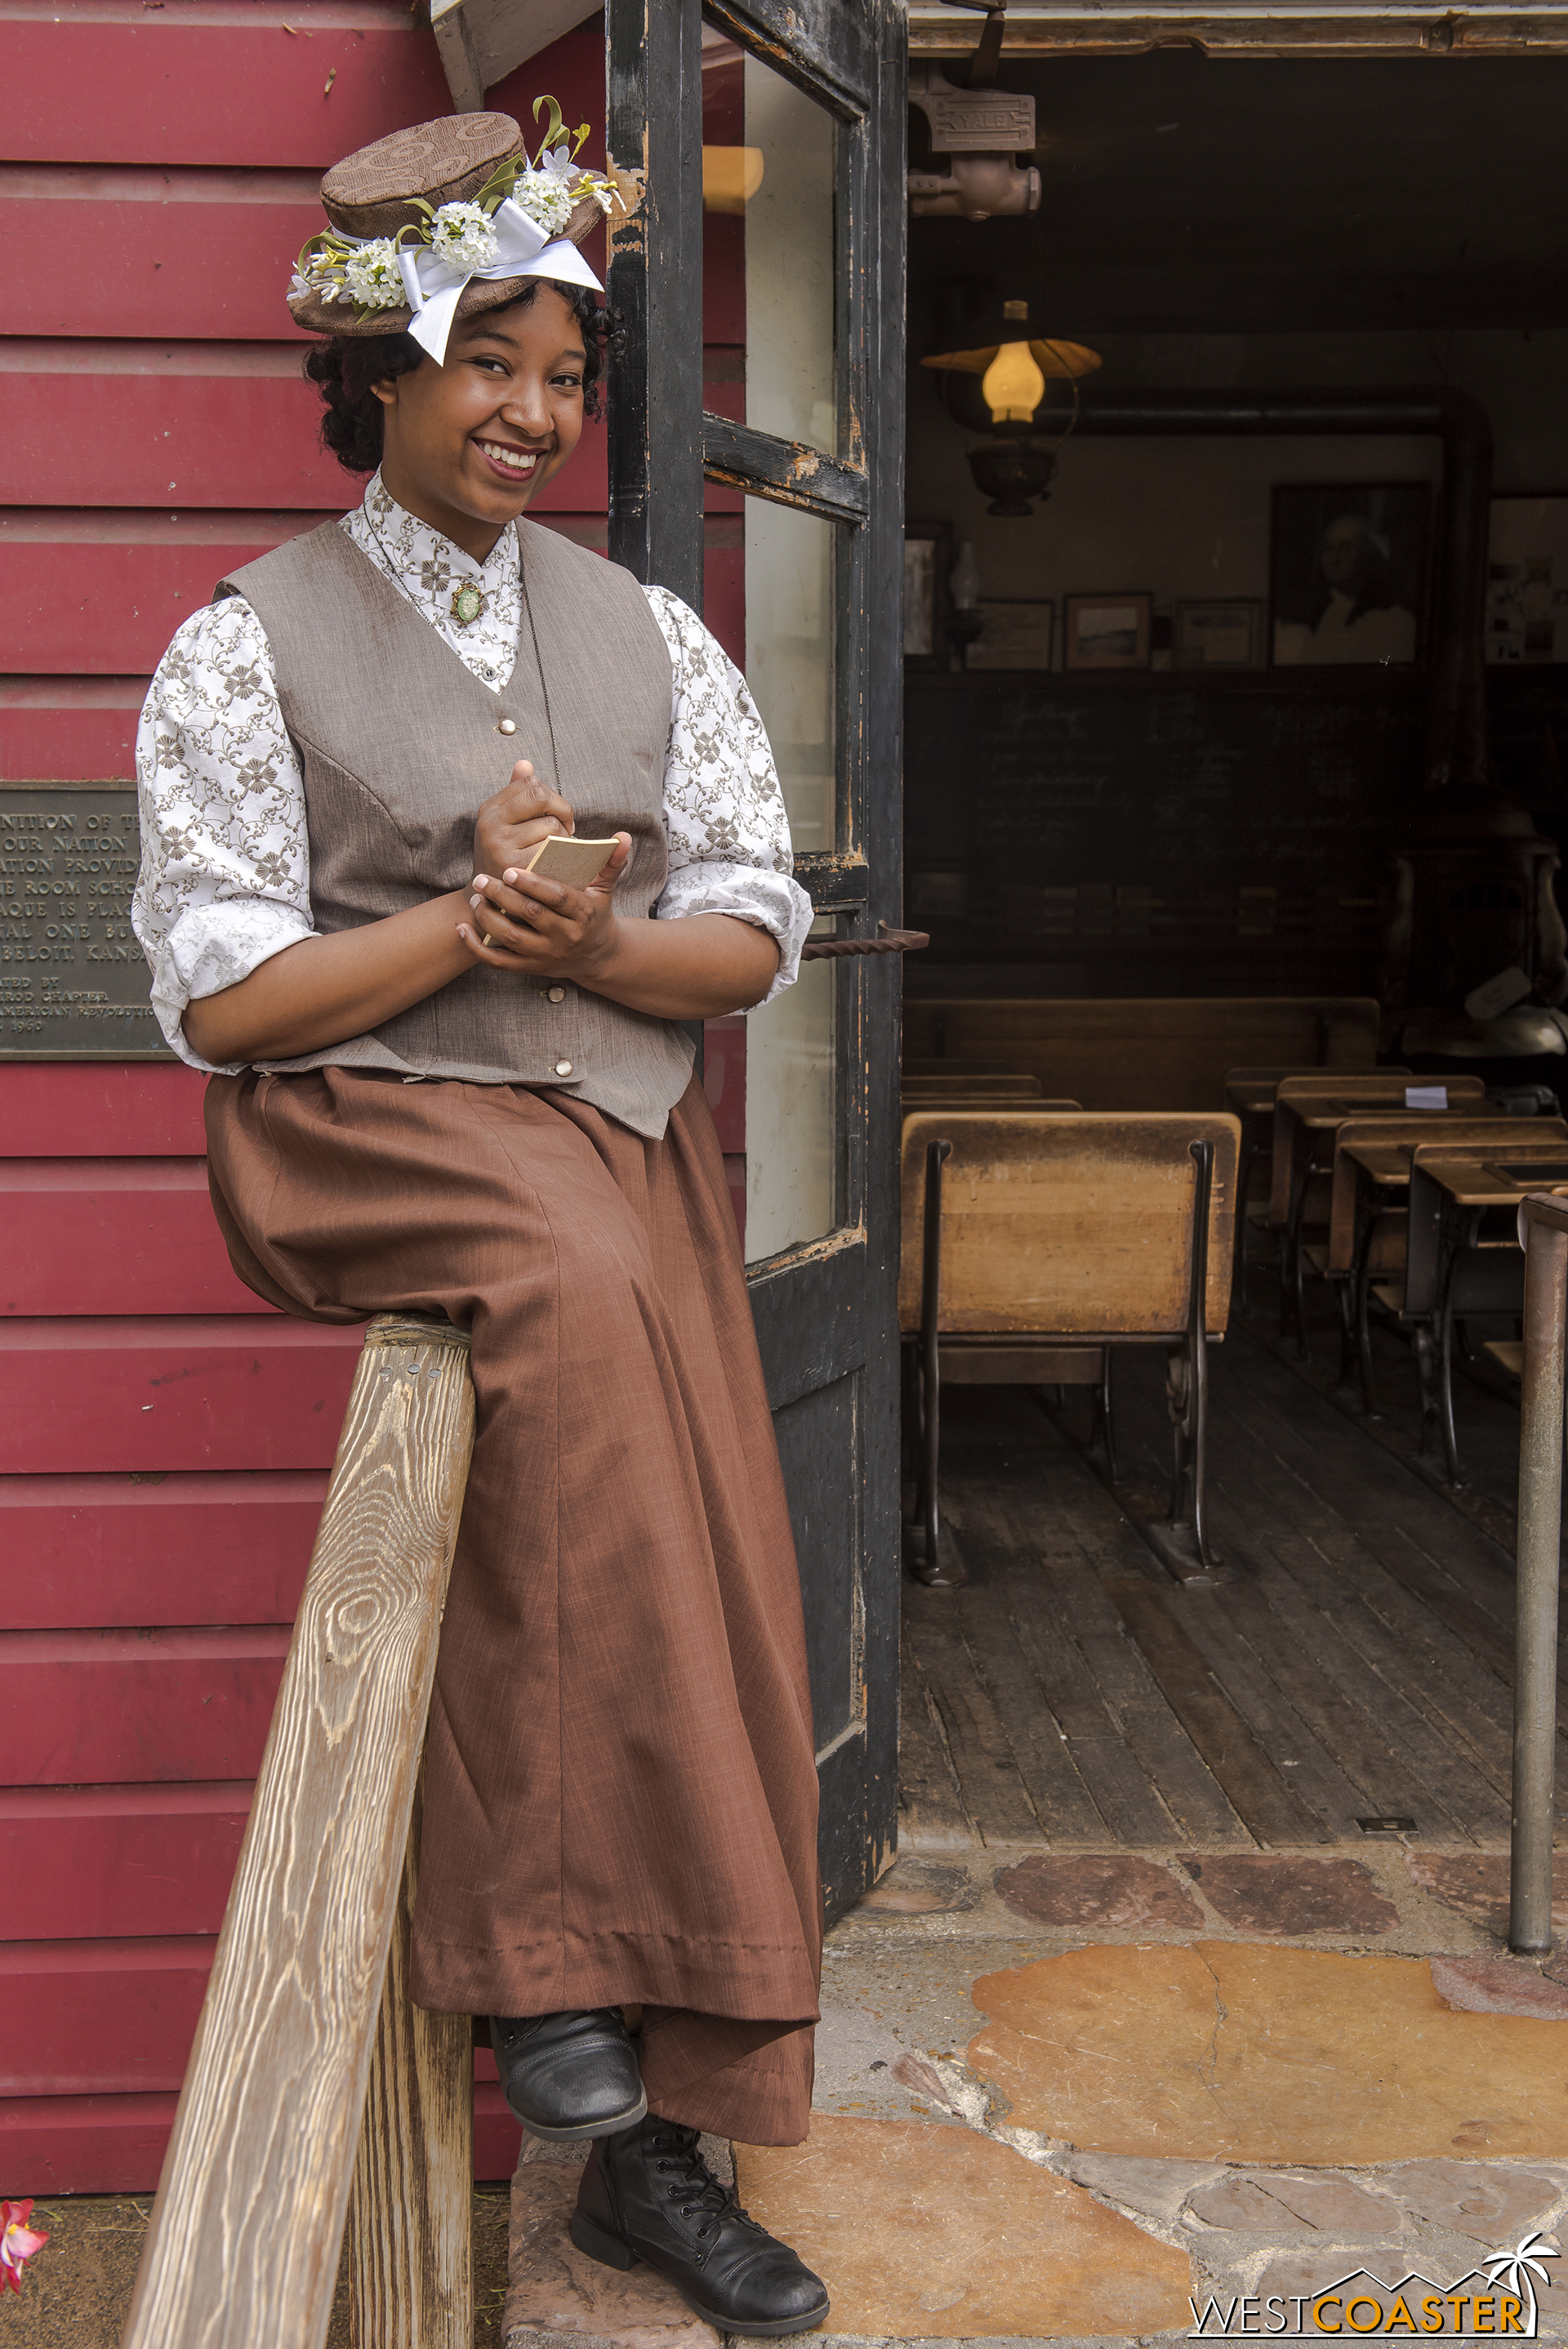 Miss Marybelle Starling is new to Calico this year.  She is one of two teachers at the old Schoolhouse.